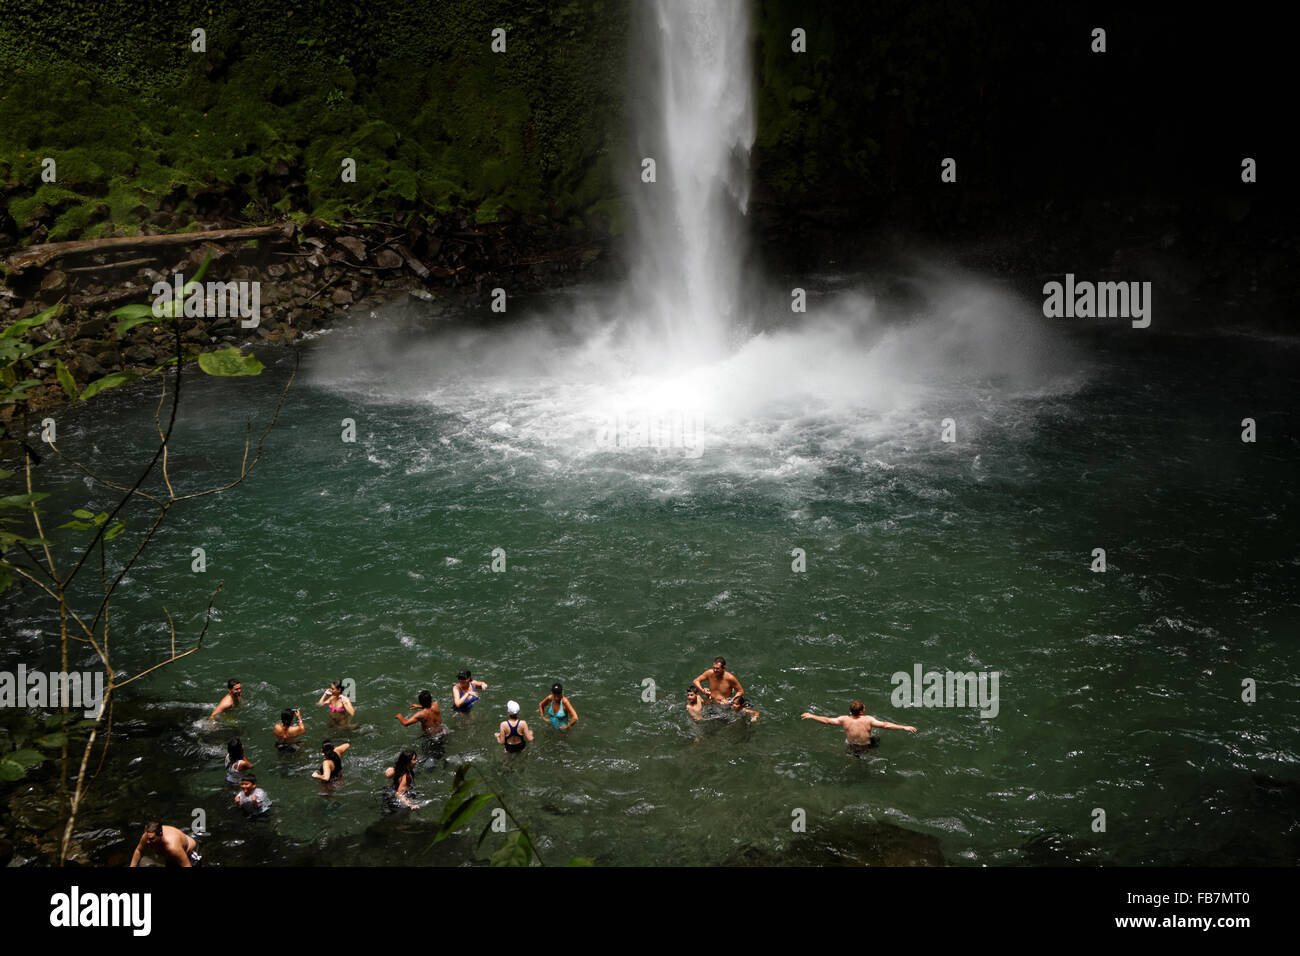 People swim in a pool at the bottom of a waterfall emerging from the jungle in Arenal Volcano National Park in Costa - Stock Image